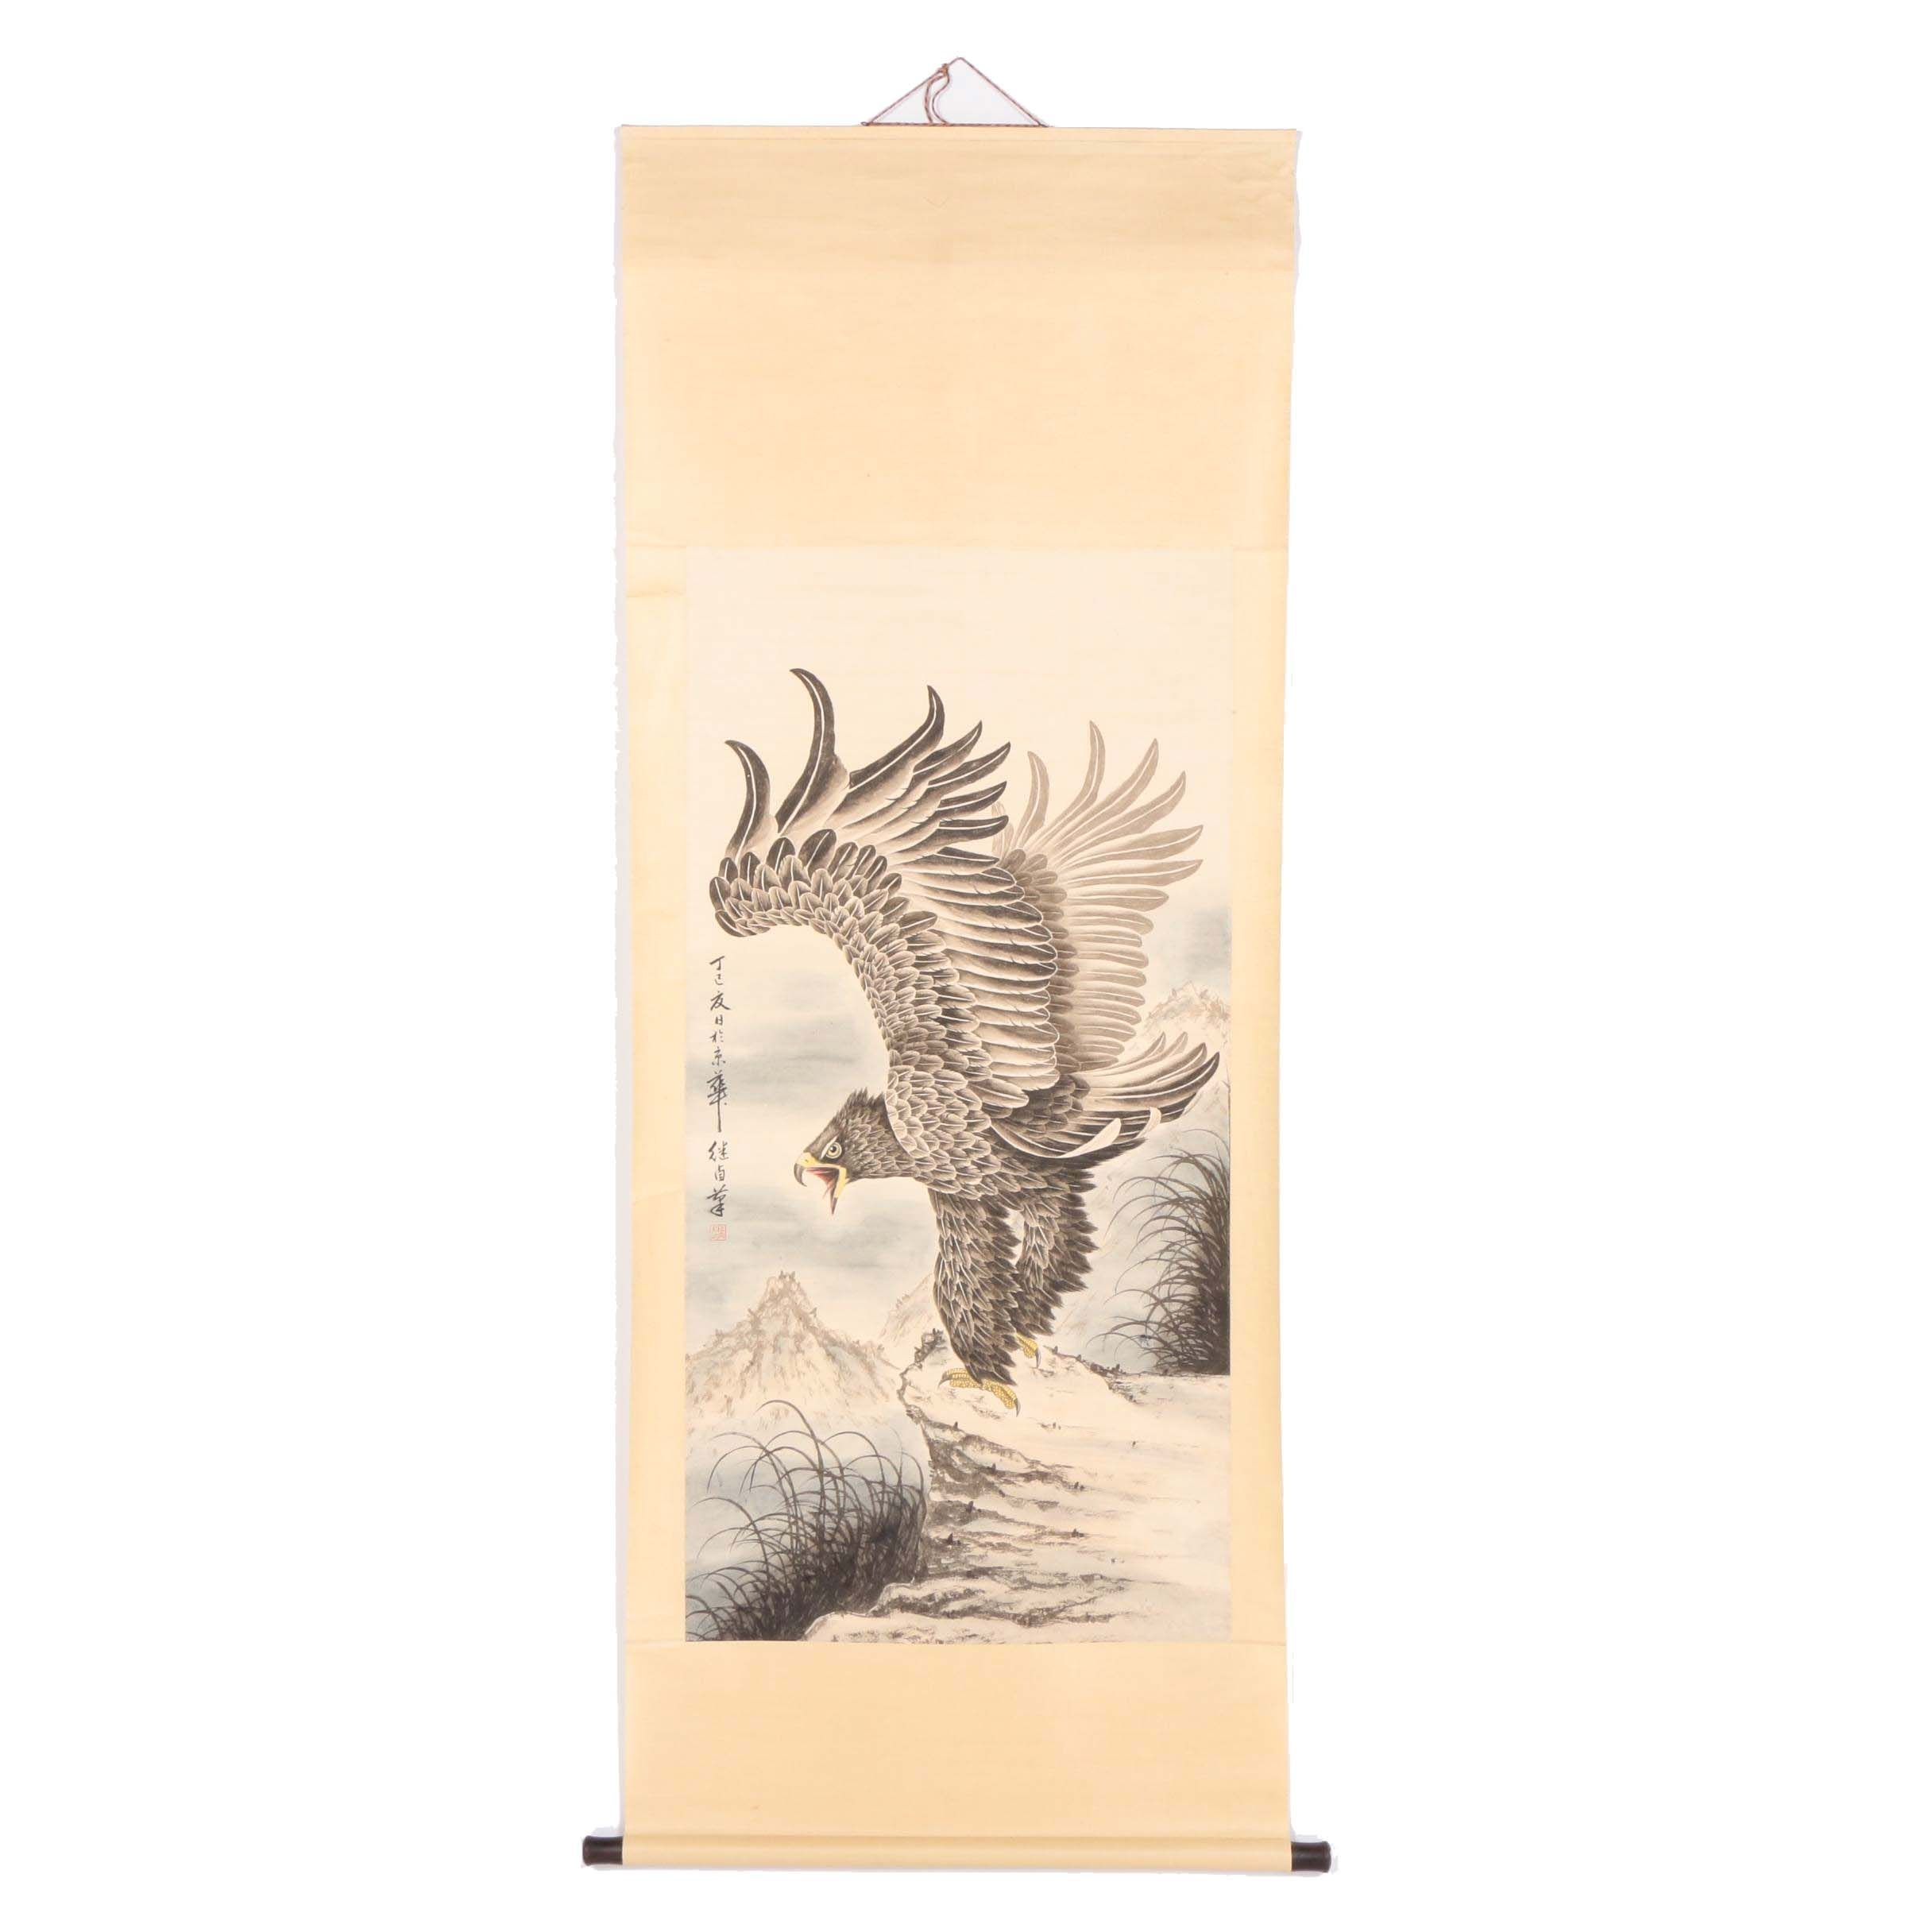 East Asian Watercolor Painting of an Eagle